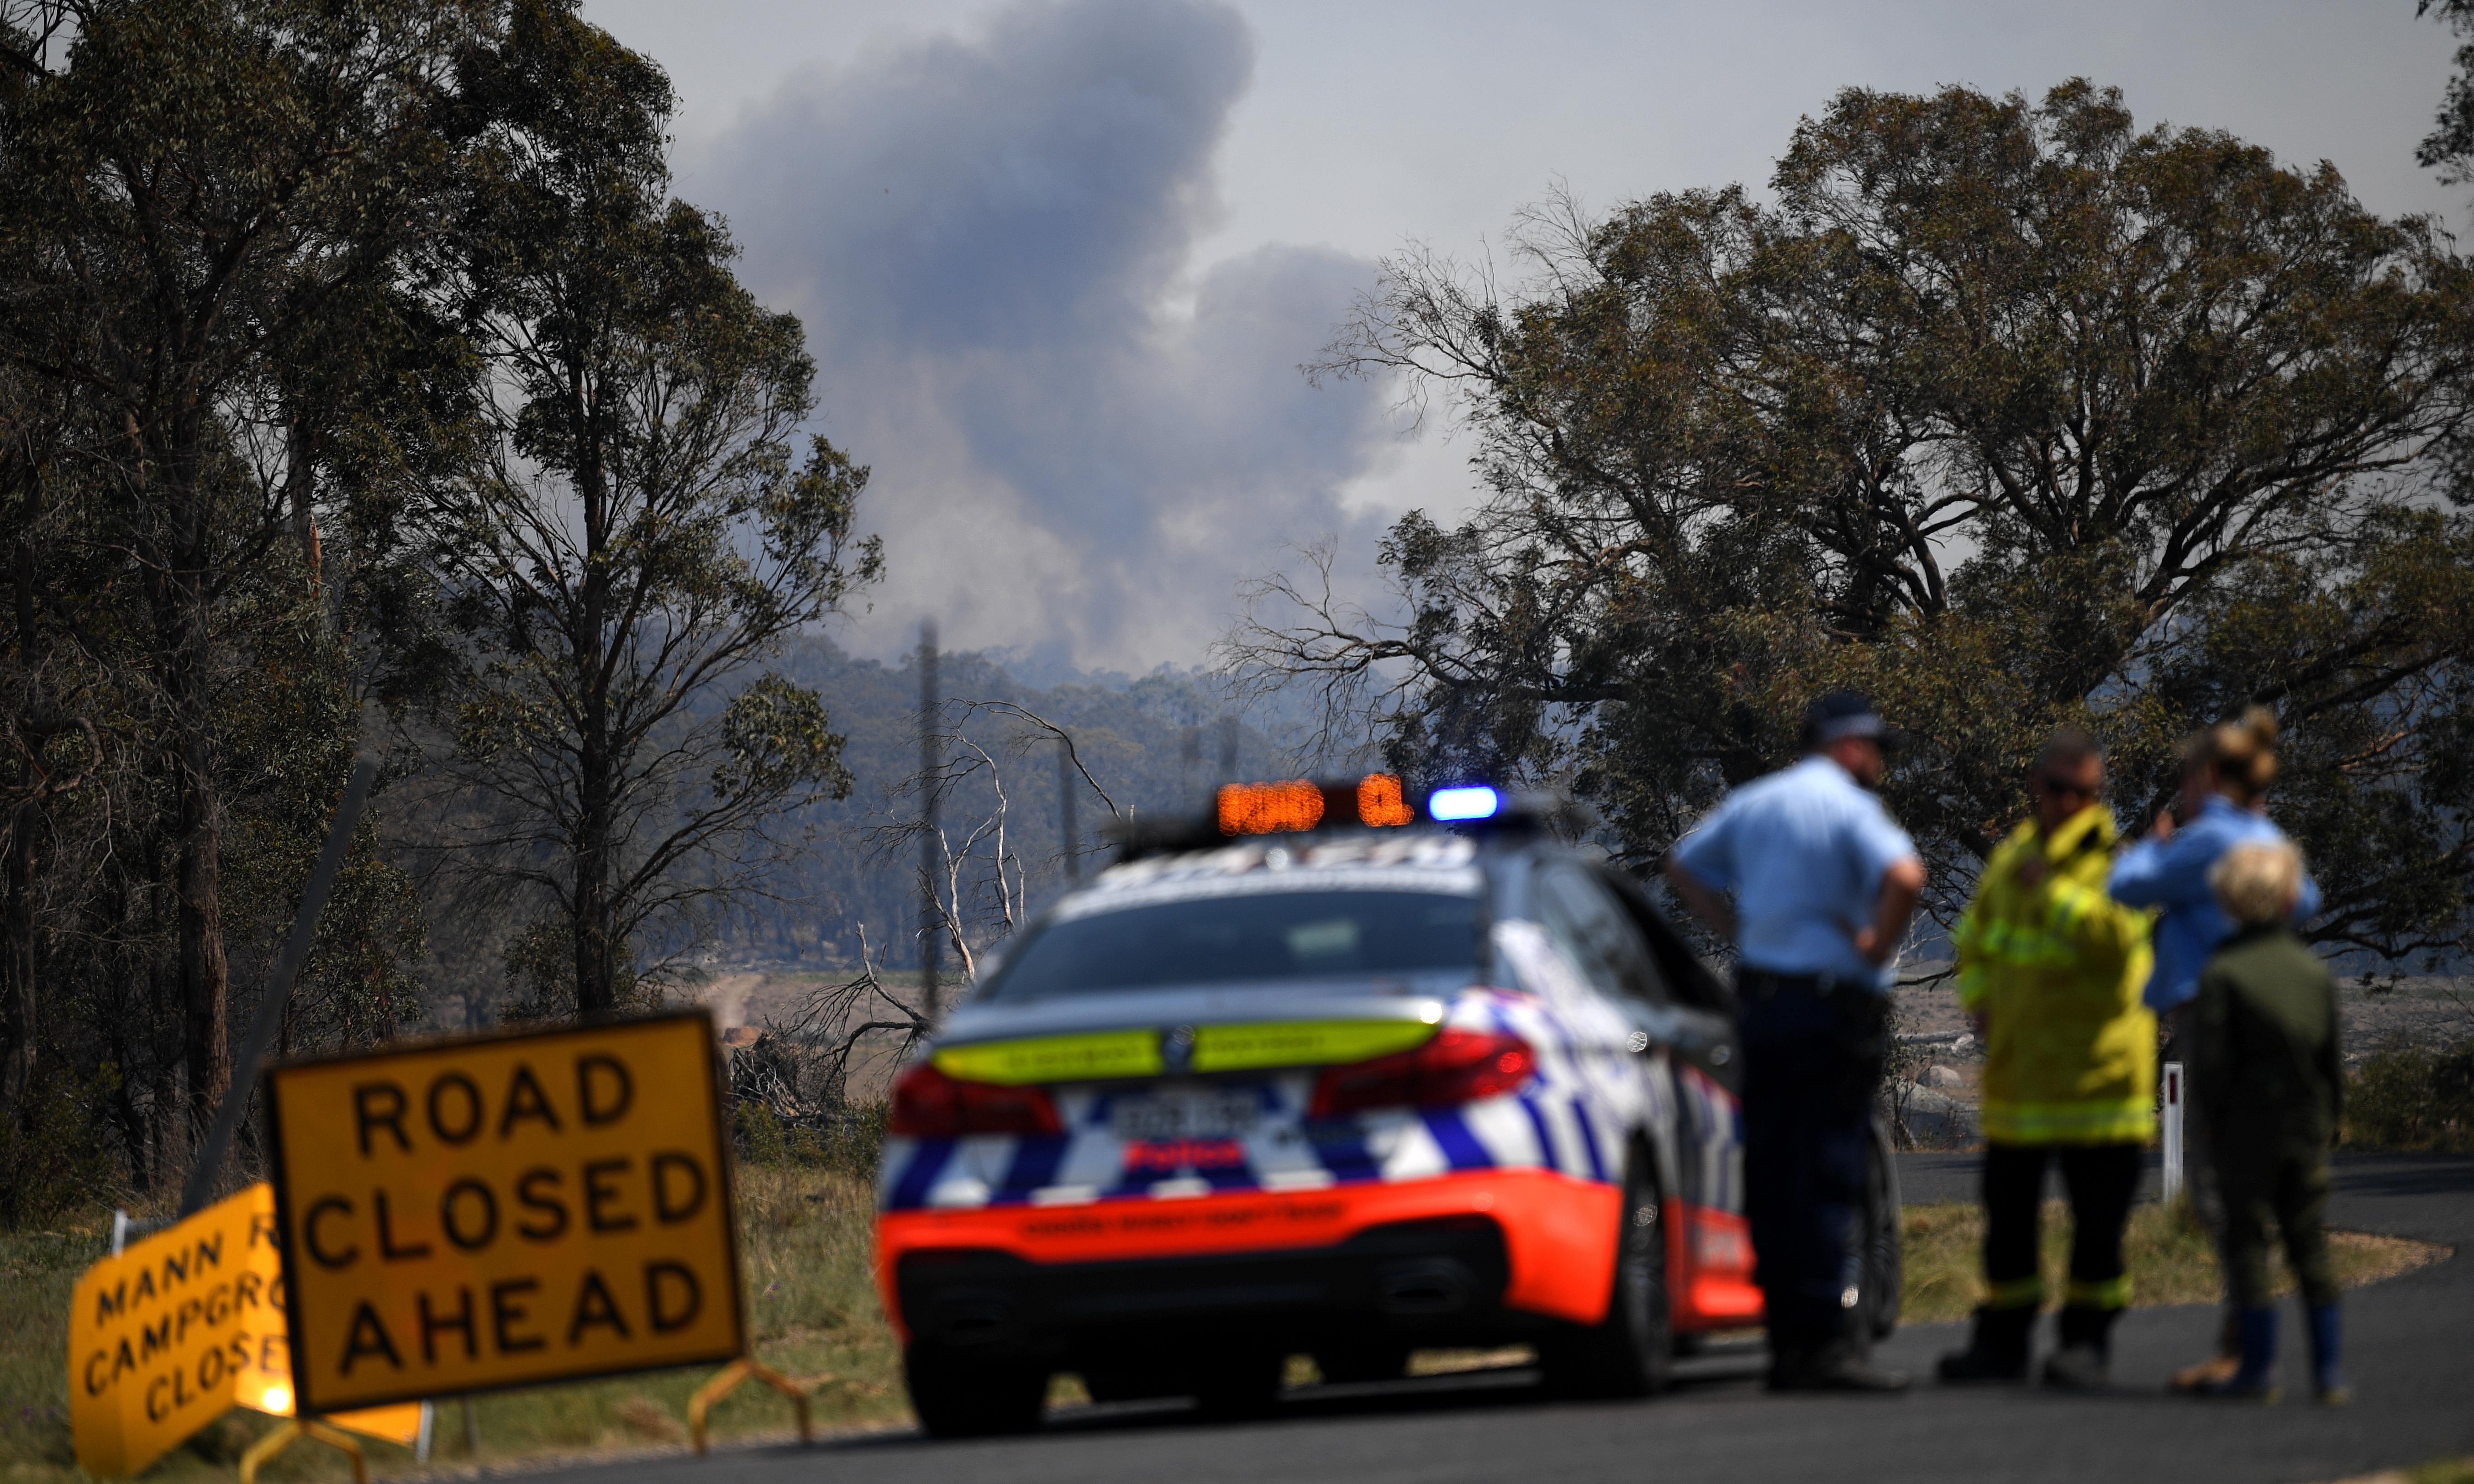 NSW and Queensland fires: Sydney to face catastrophic fire danger for first time